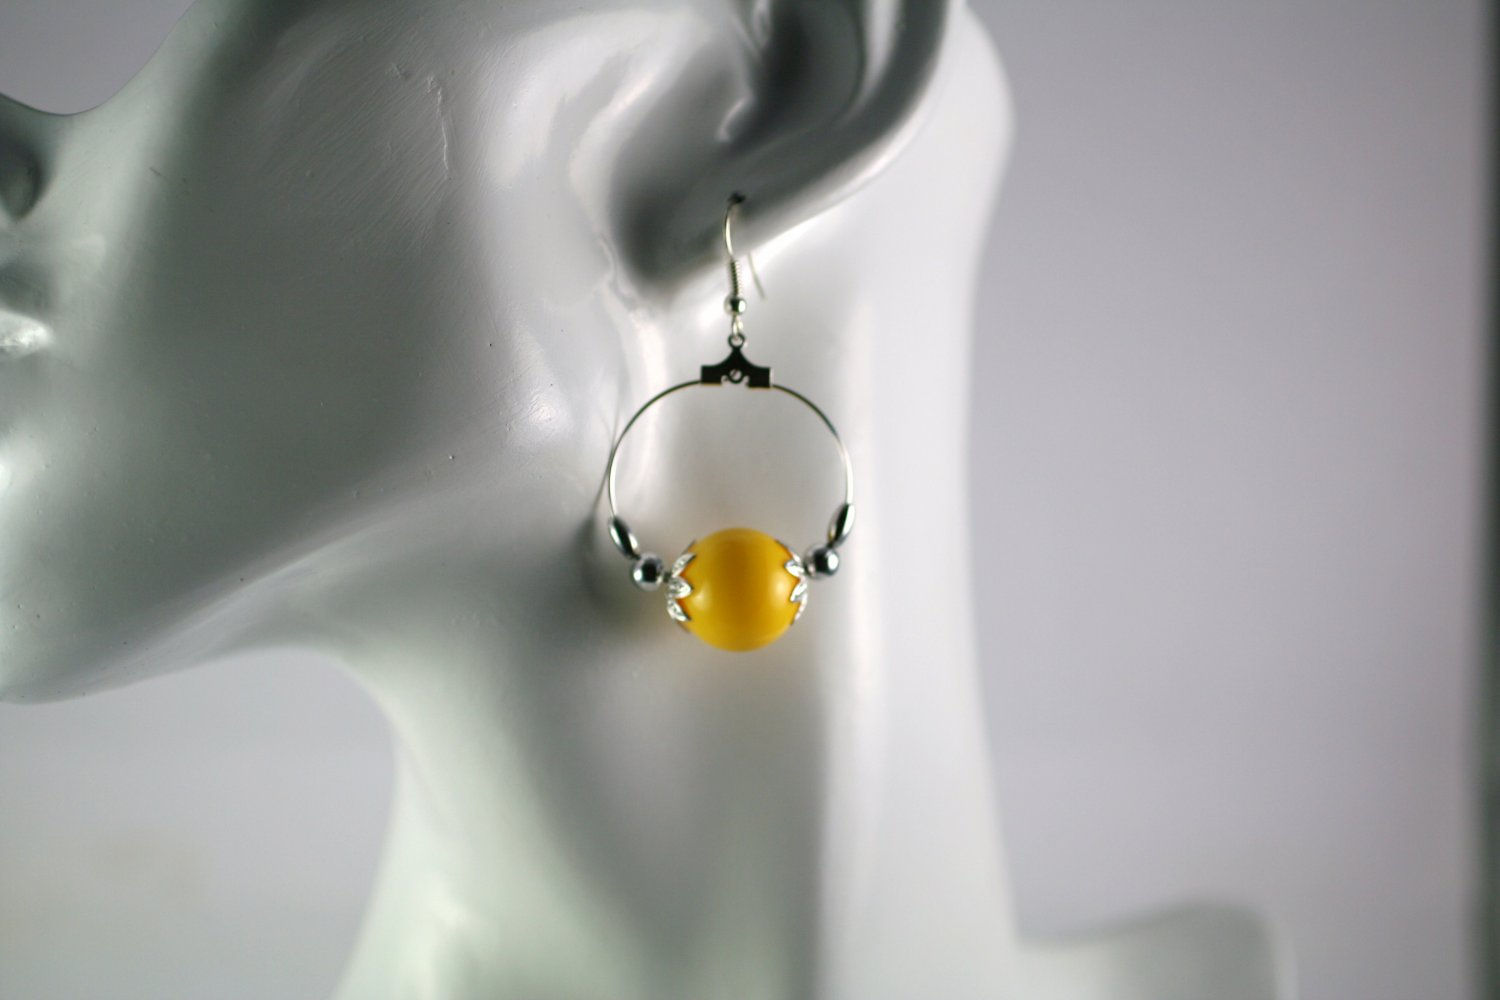 Silver Hoop Earrings with  Yellow Vintage Beads 1 in.  Handcrafted Jewelry